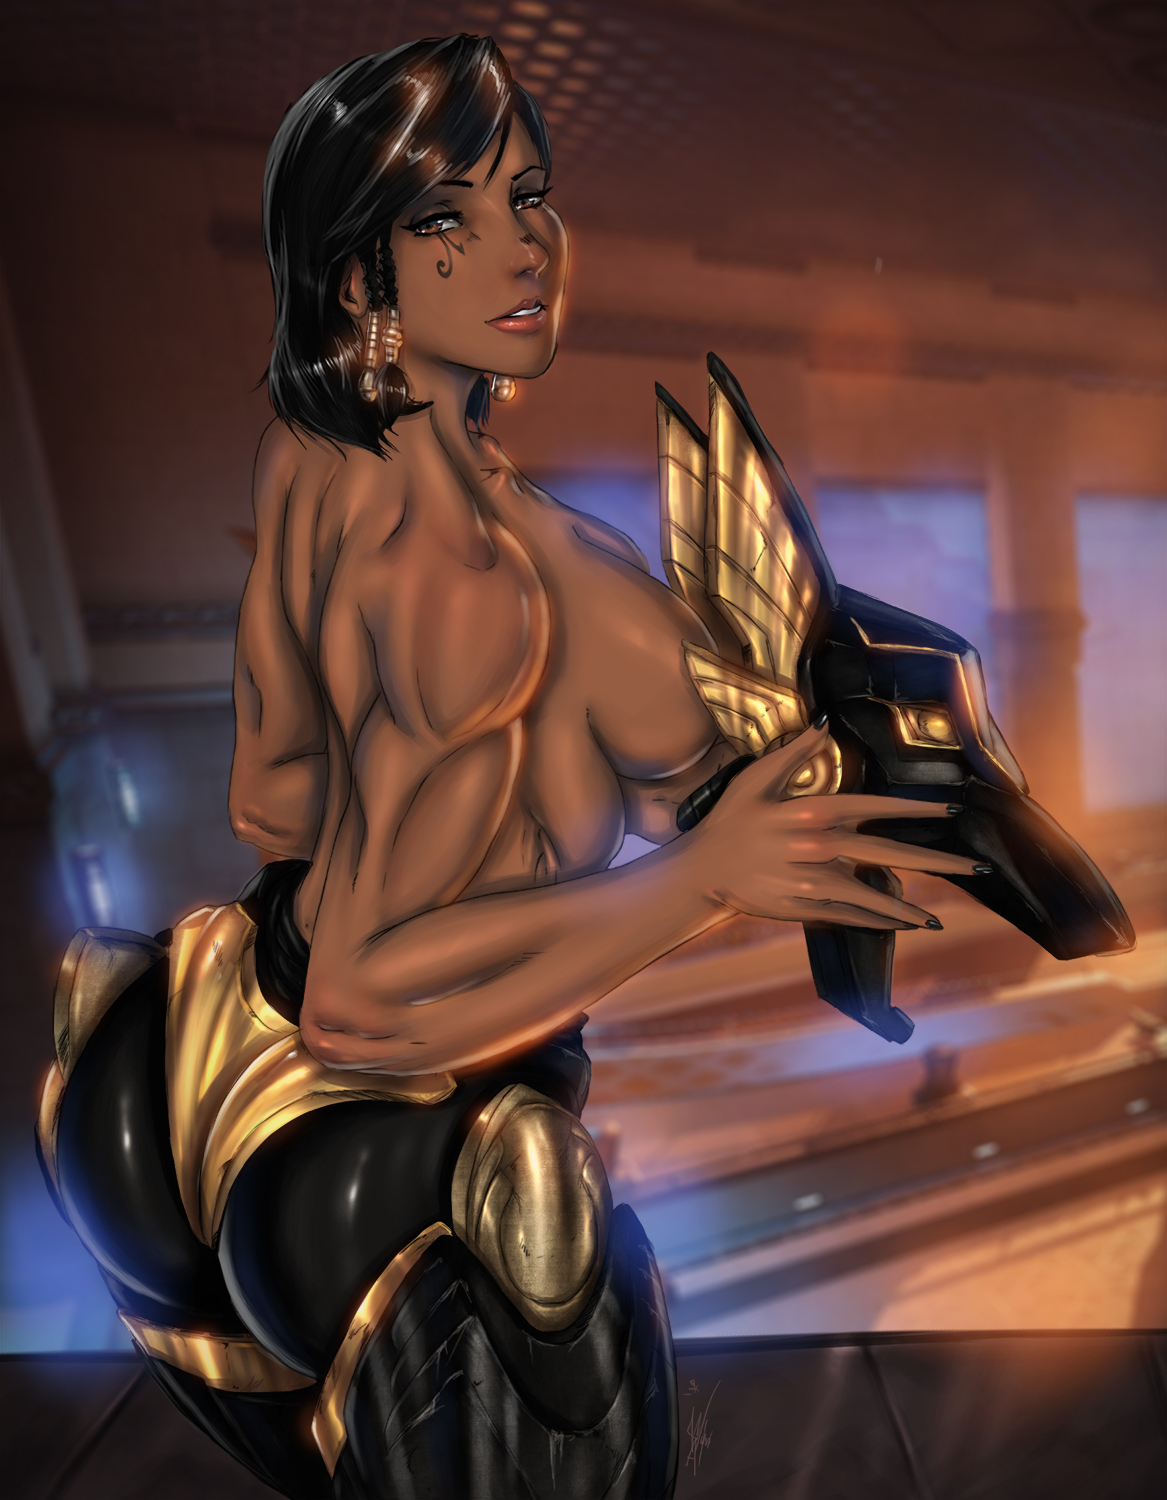 Anubis Pharah suiting up by Ultamisia